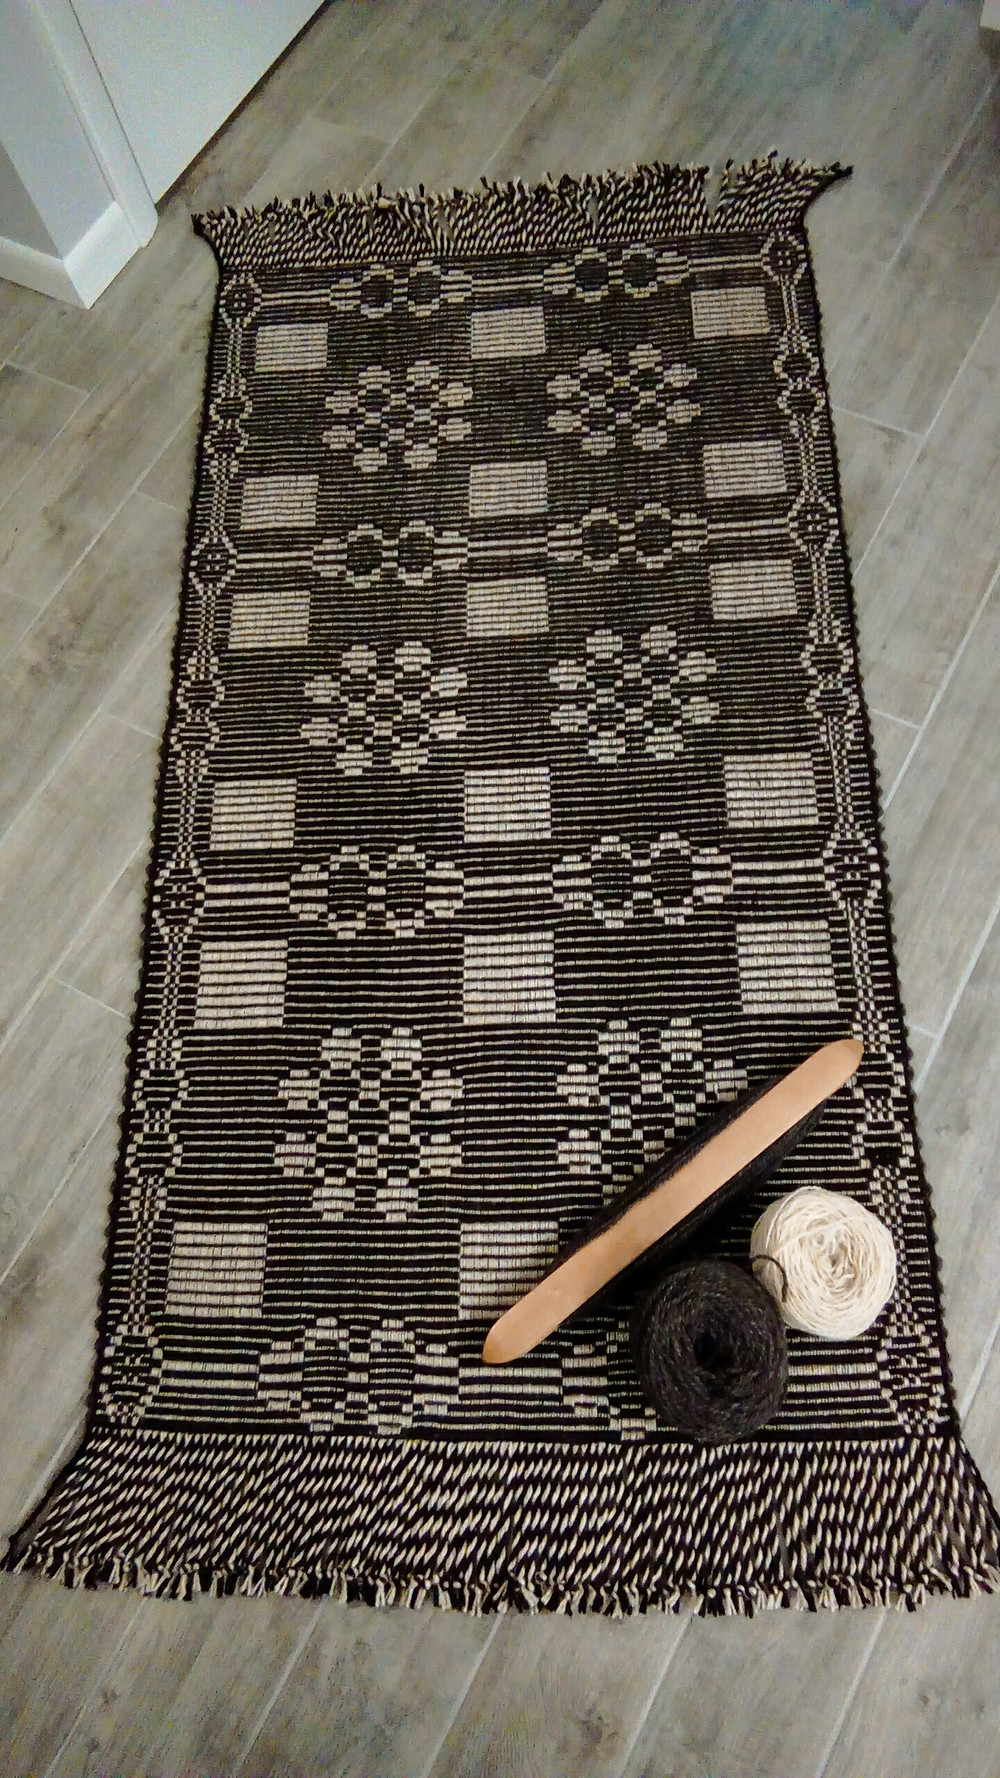 Rug by Peggy Siders